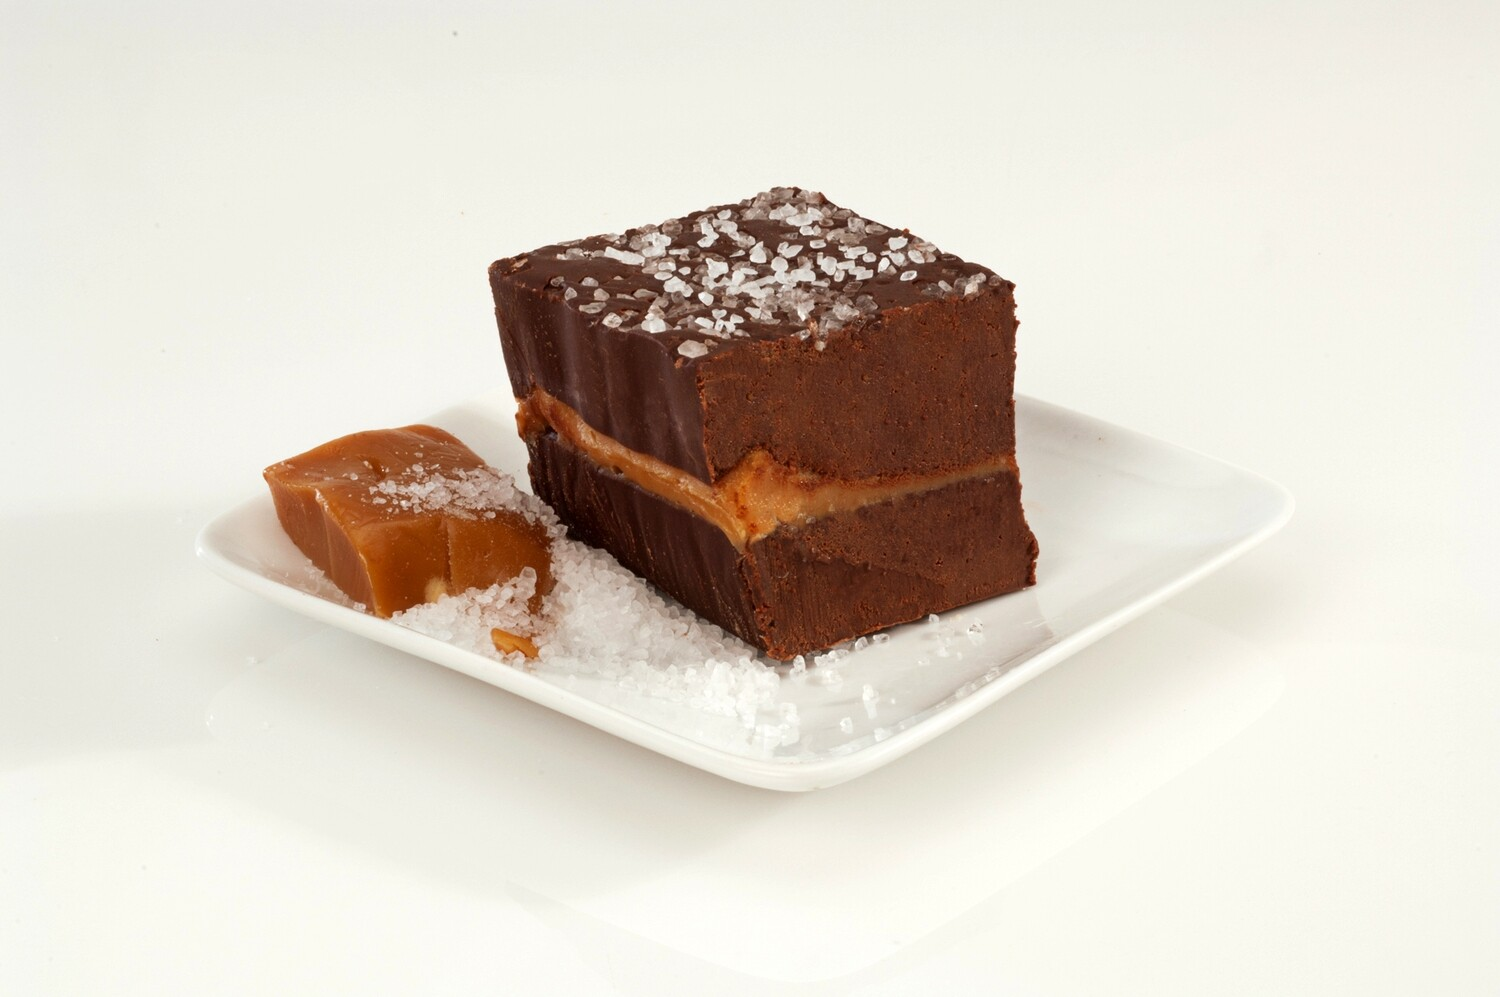 Dark Chocolate Fudge with Caramel and Sea Salt